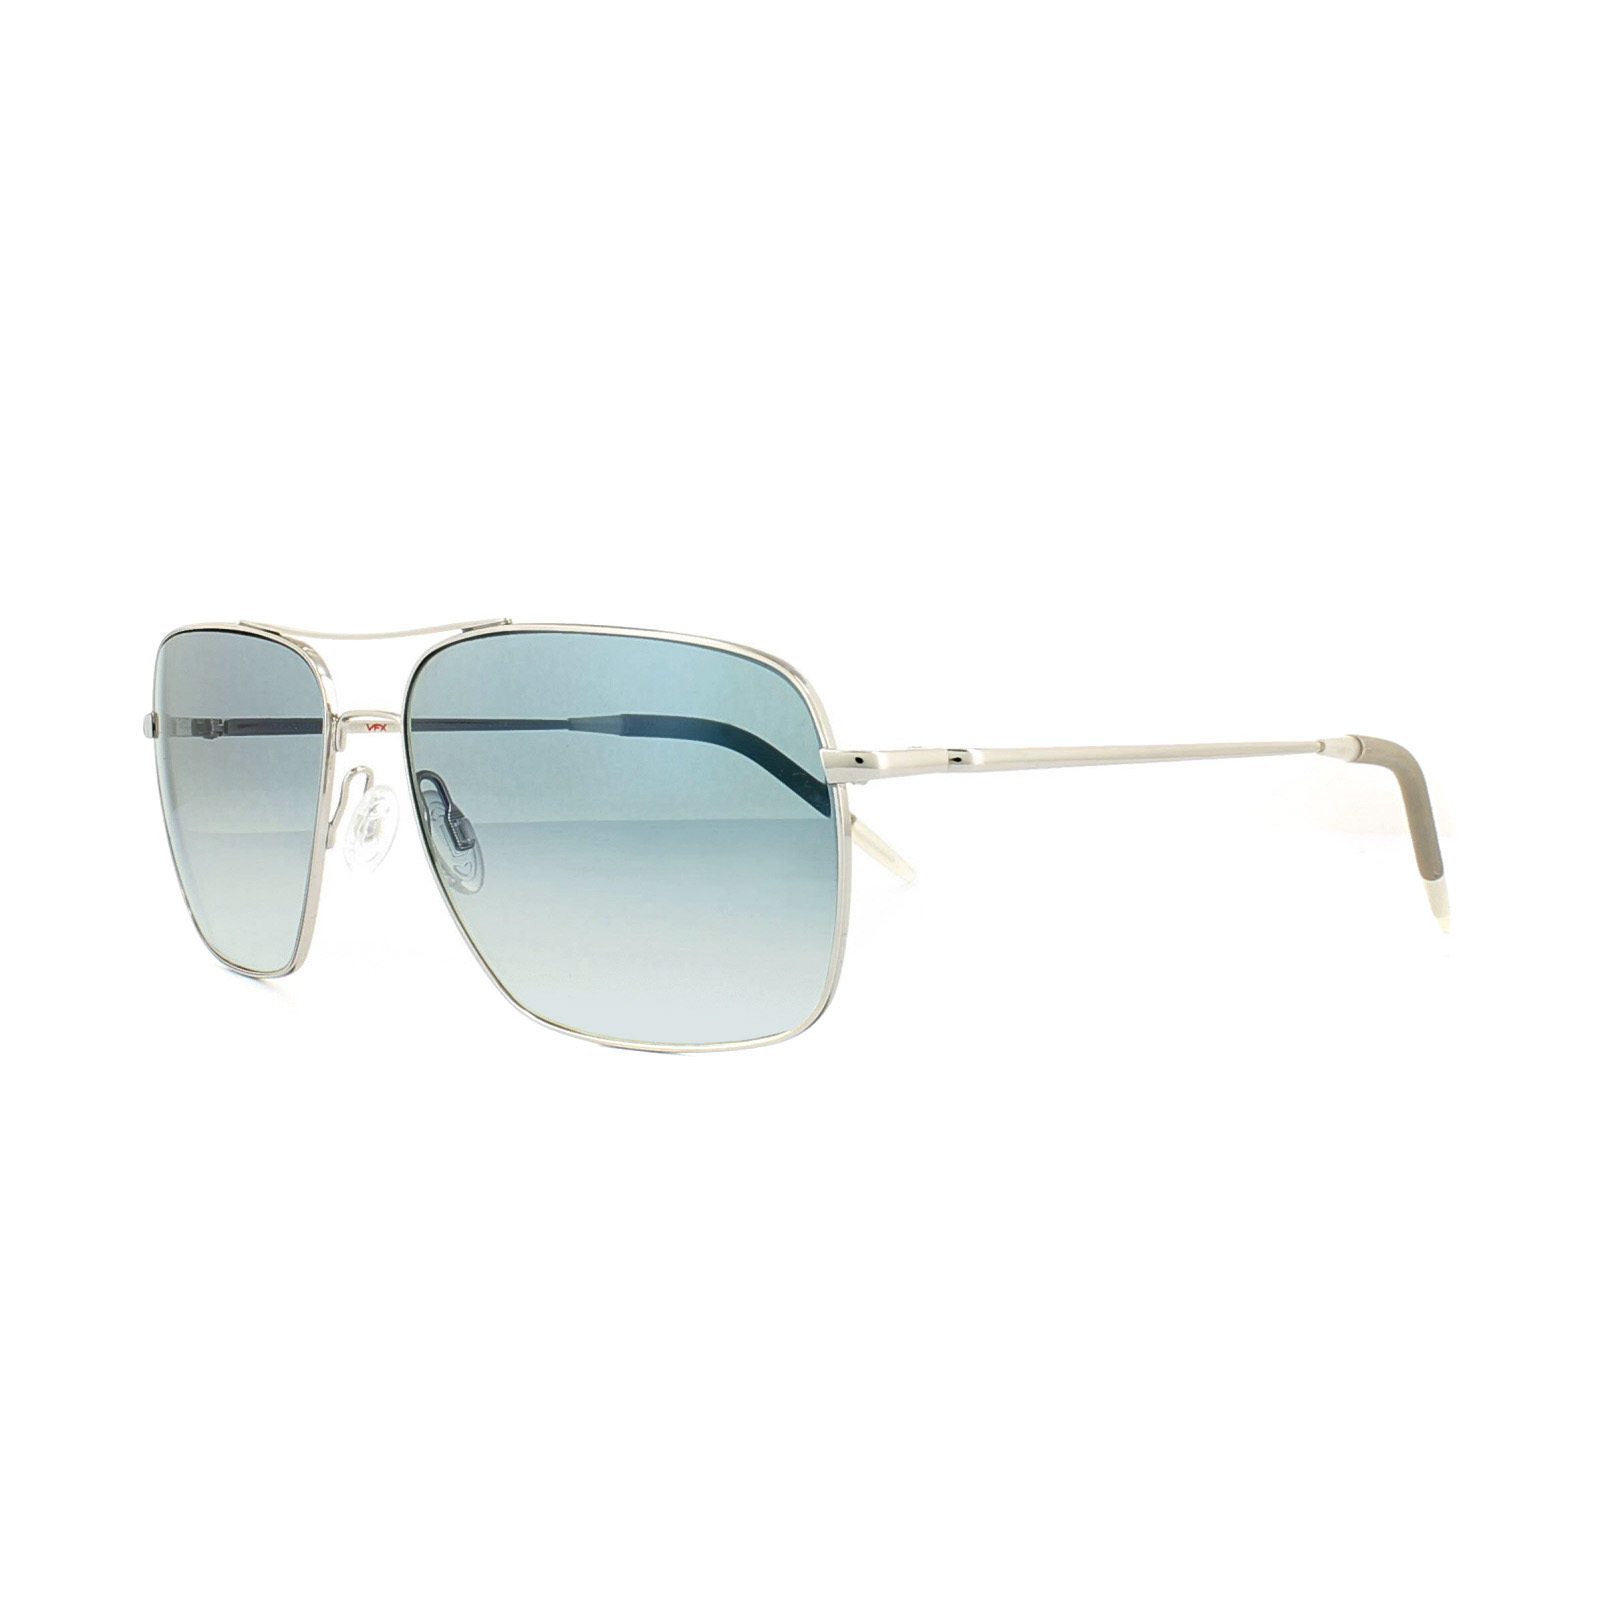 83330a19f40 Sentinel Oliver Peoples Sunglasses Clifton 1150 5036/3F Silver Sapphire VFX  Photochromic